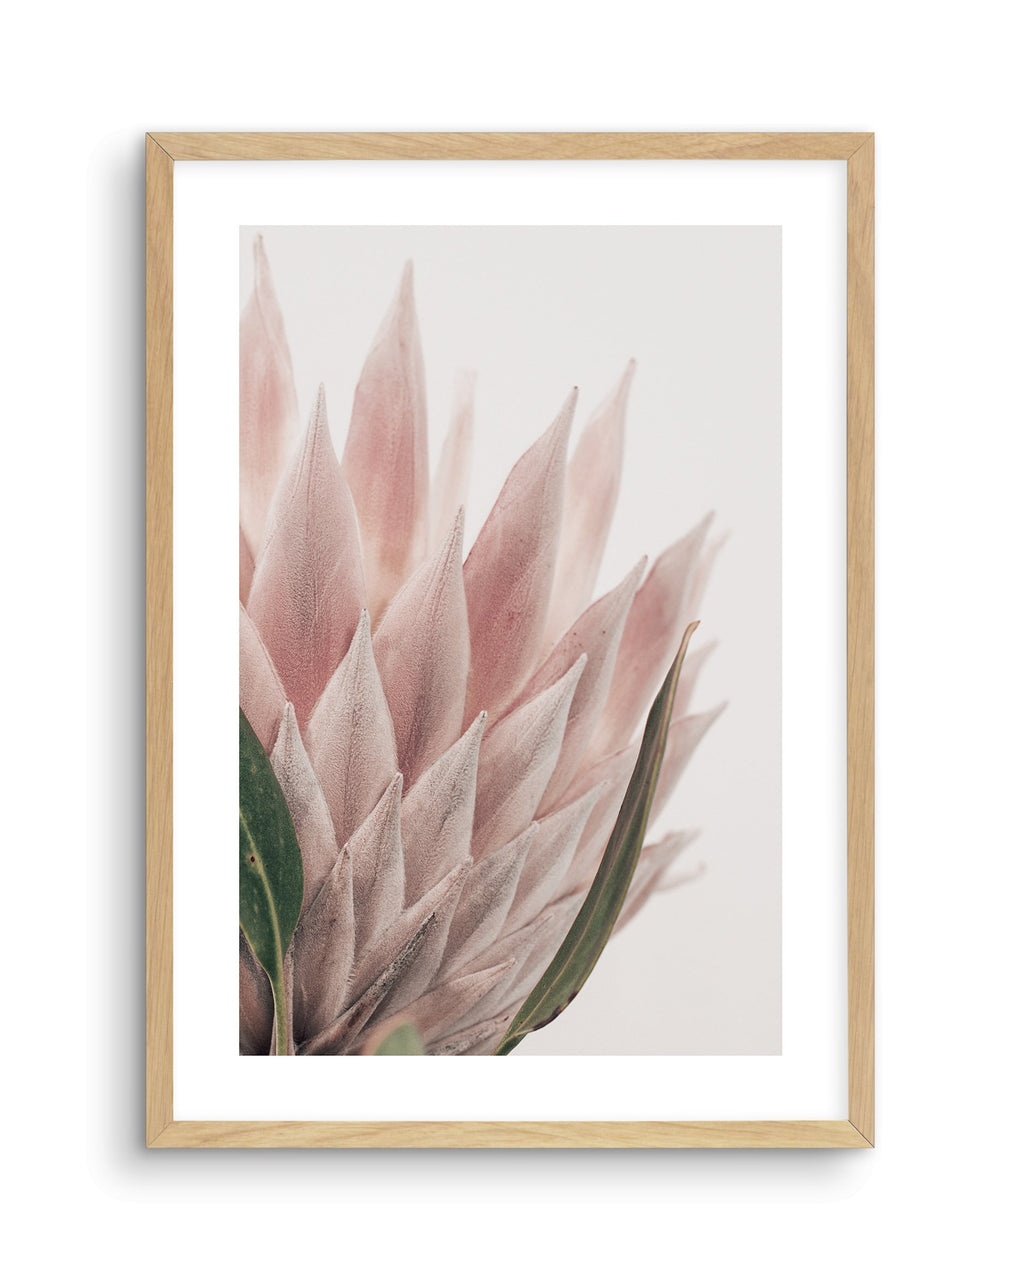 Protea in Overture No 4 - Olive et Oriel | Shop Art Prints & Posters Online